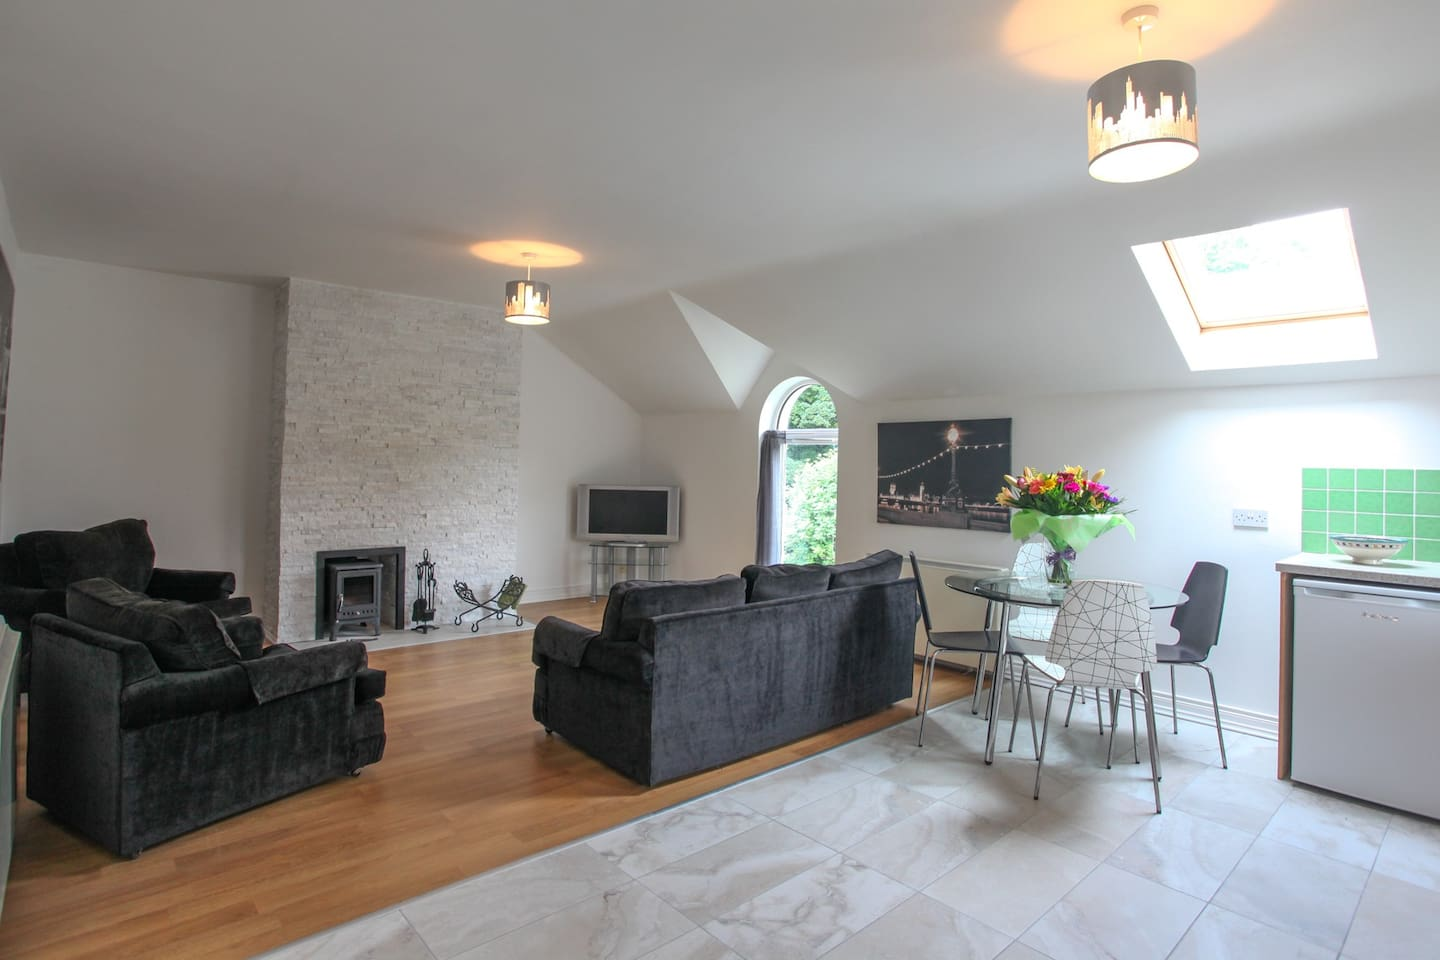 Spacious seating area with Peat burning stove and feature granite wall